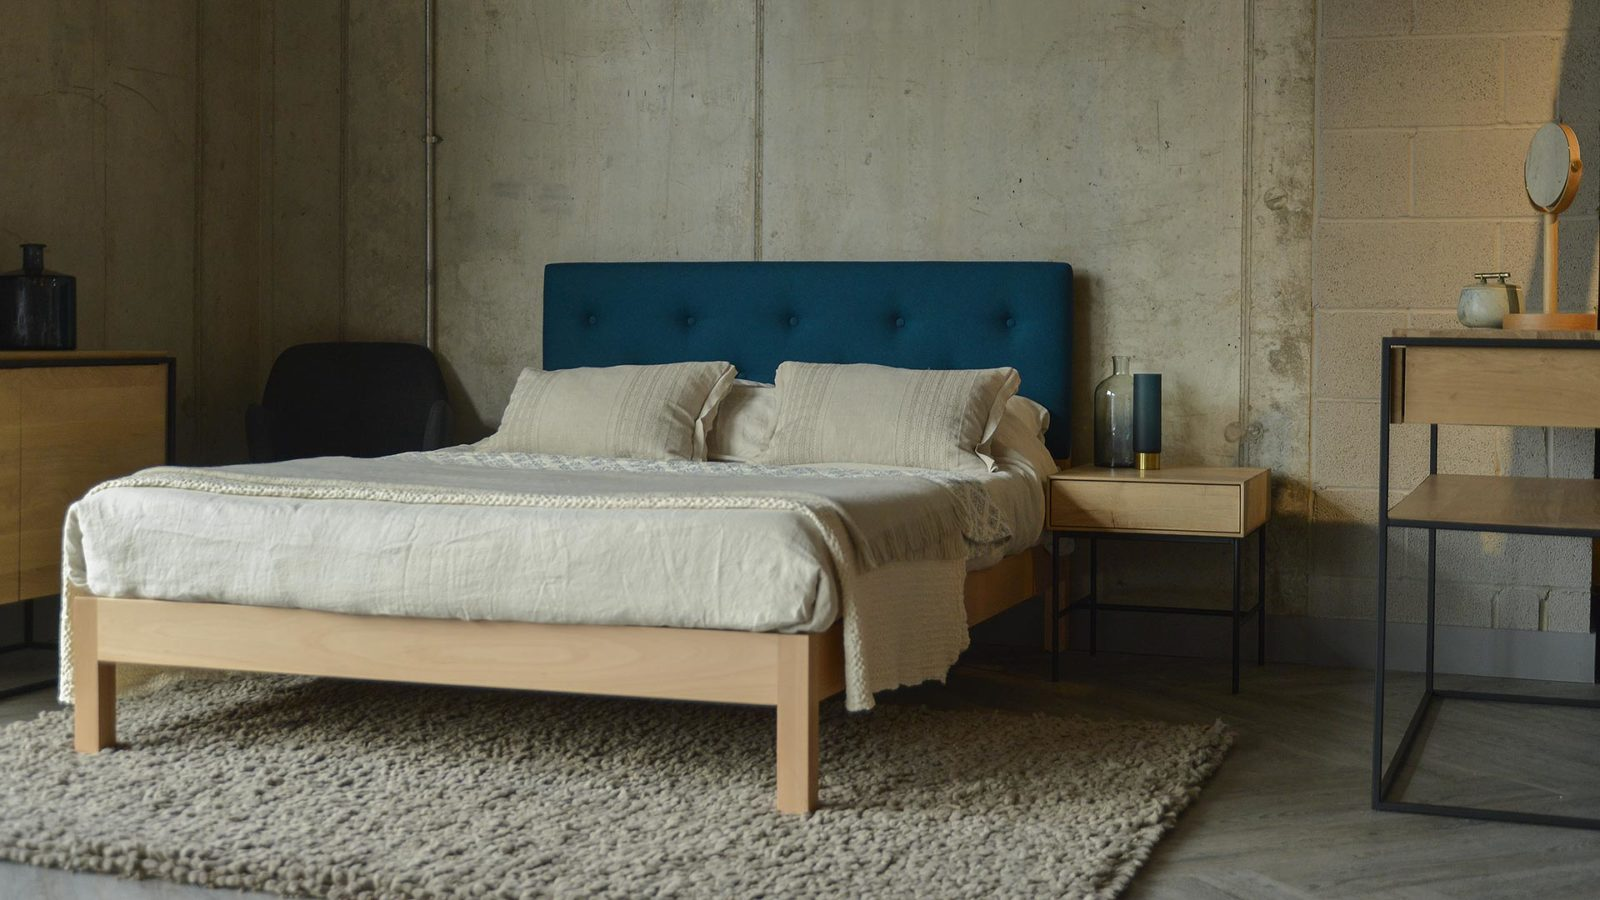 Beech Arran contemporary upholstered bed with Marine blue Amatheon fabric headboard